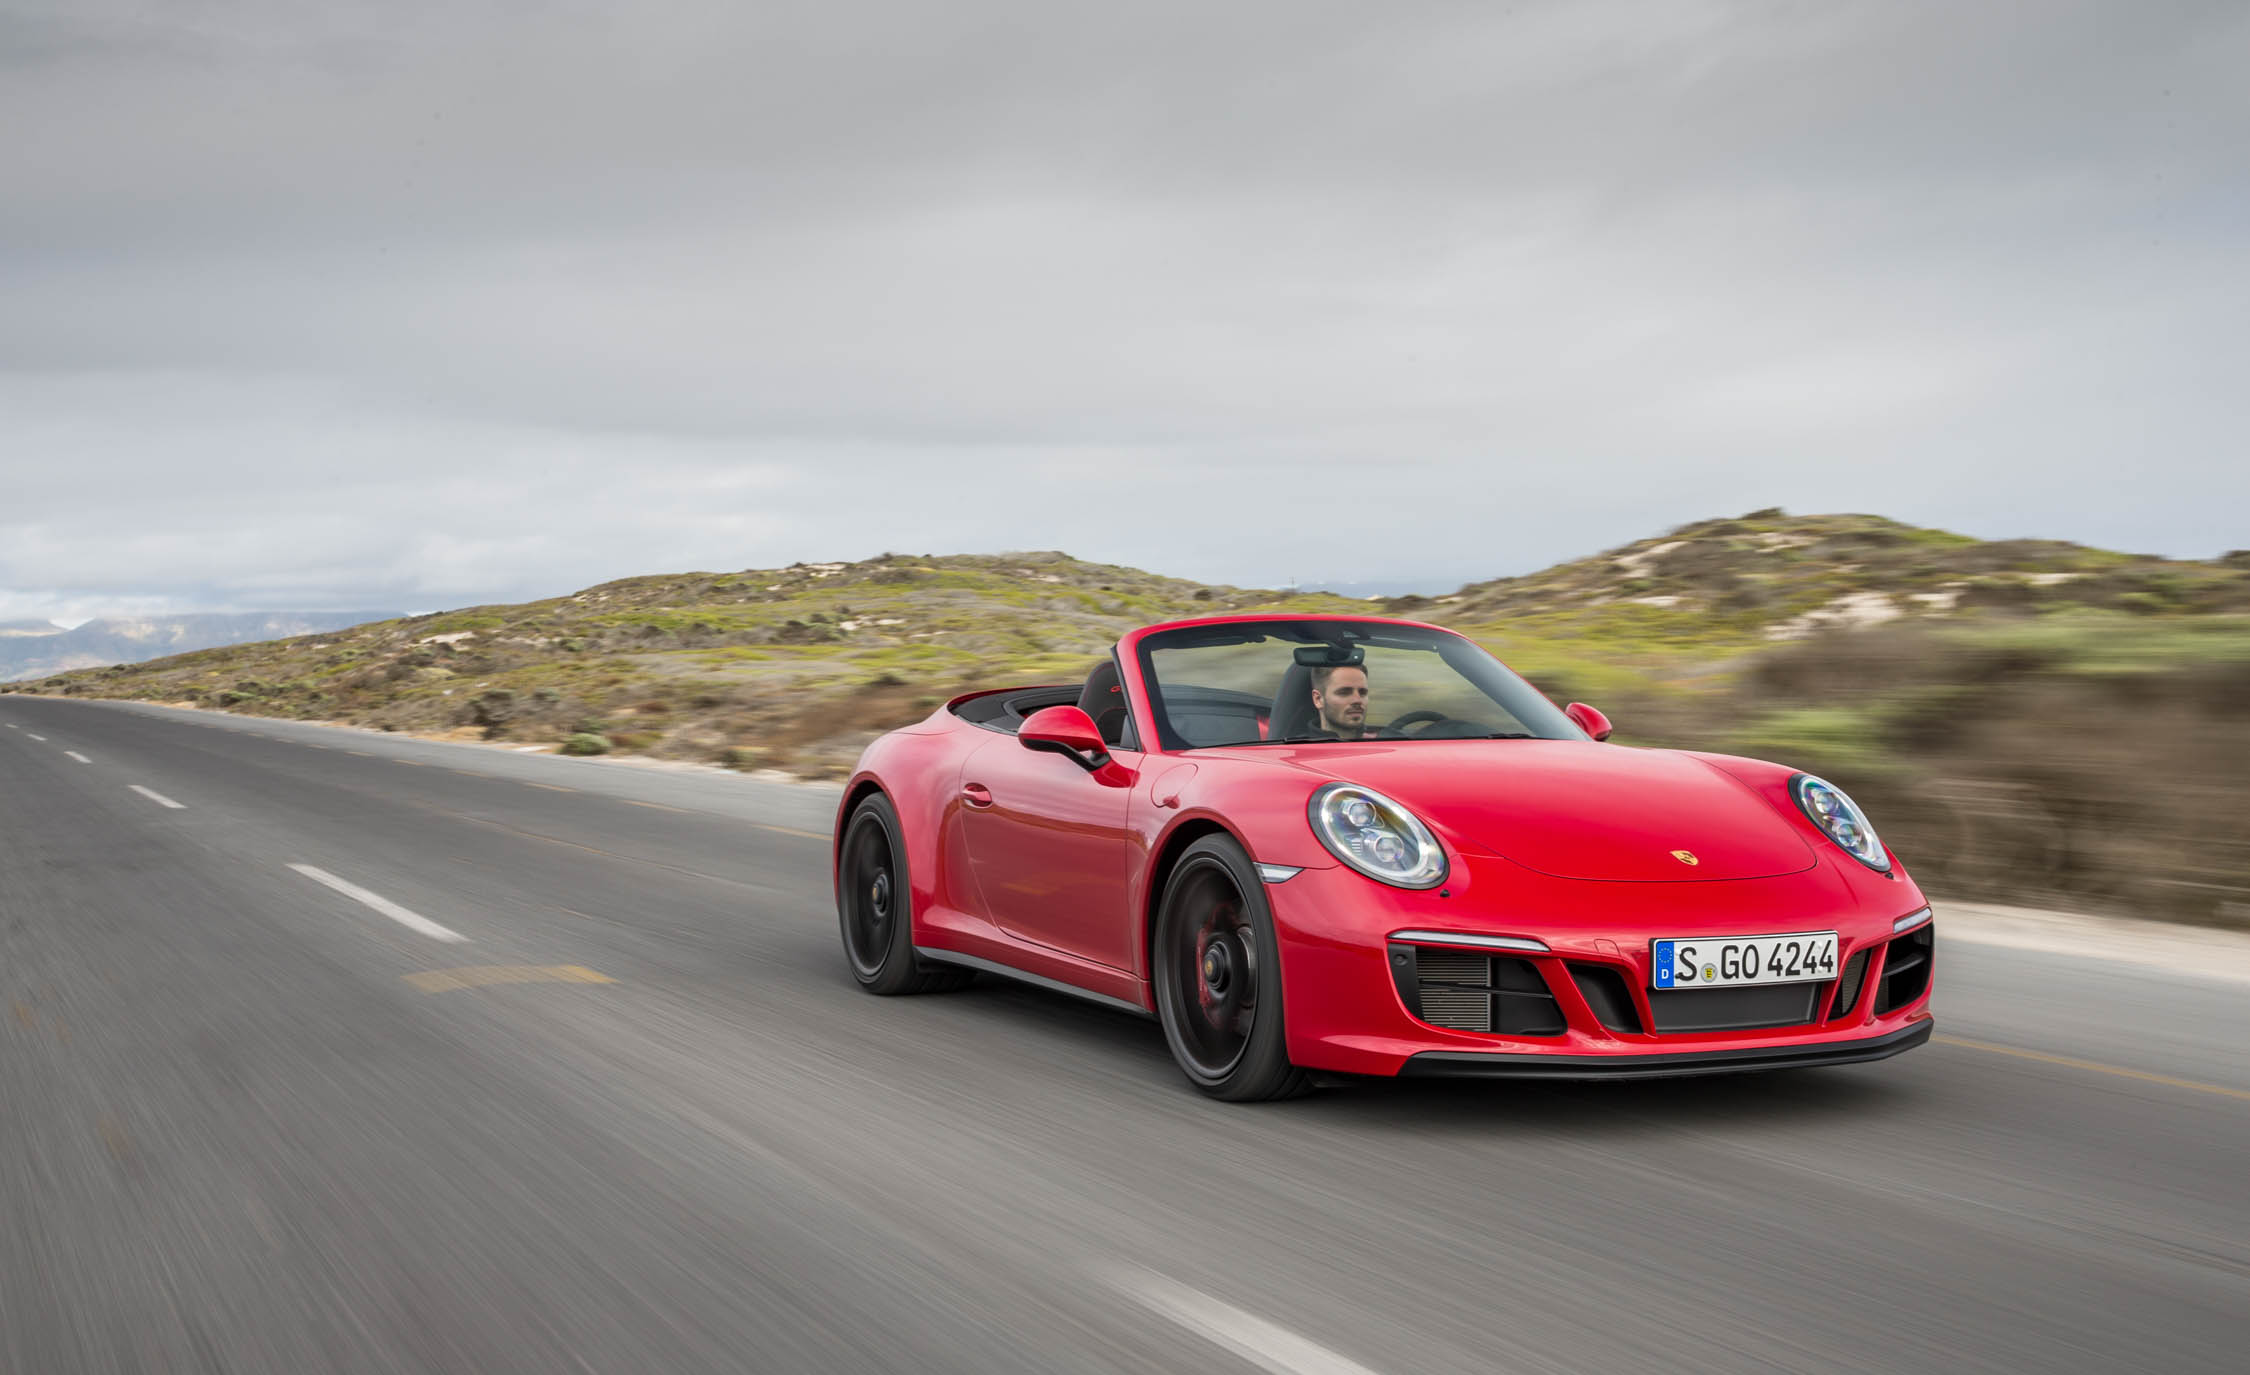 2017 Porsche 911 Carrera GTS Cabriolet Color Red (Photo 31 of 97)